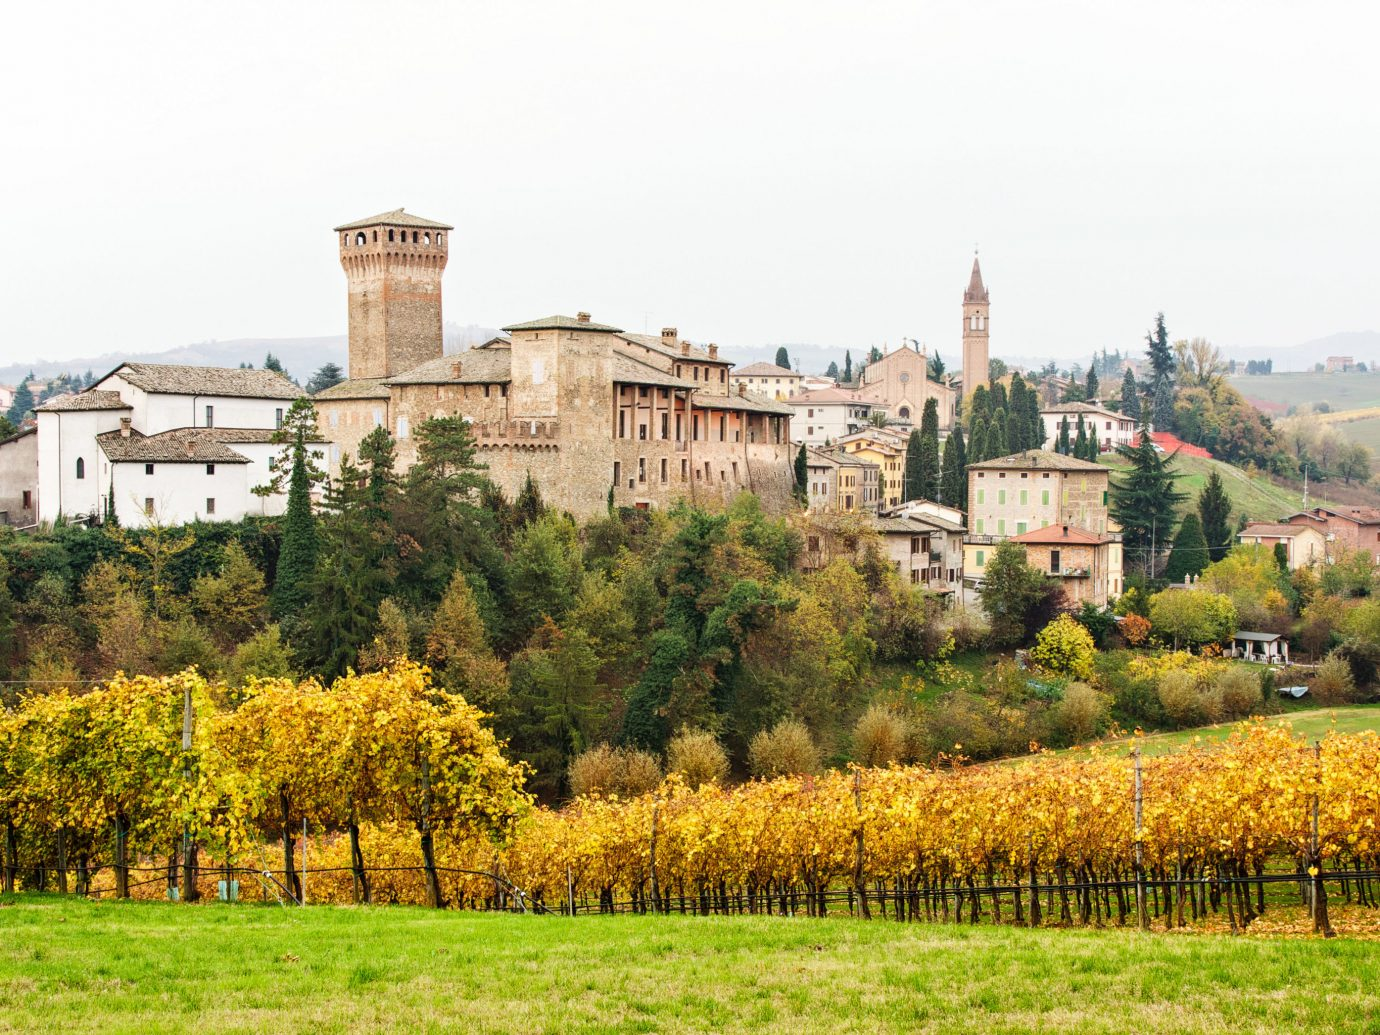 europe Italy Off-the-beaten Path Trip Ideas Village sky Town field agriculture Vineyard rural area tree château stately home estate meadow national trust for places of historic interest or natural beauty landscape hill grass house grassland castle autumn middle ages